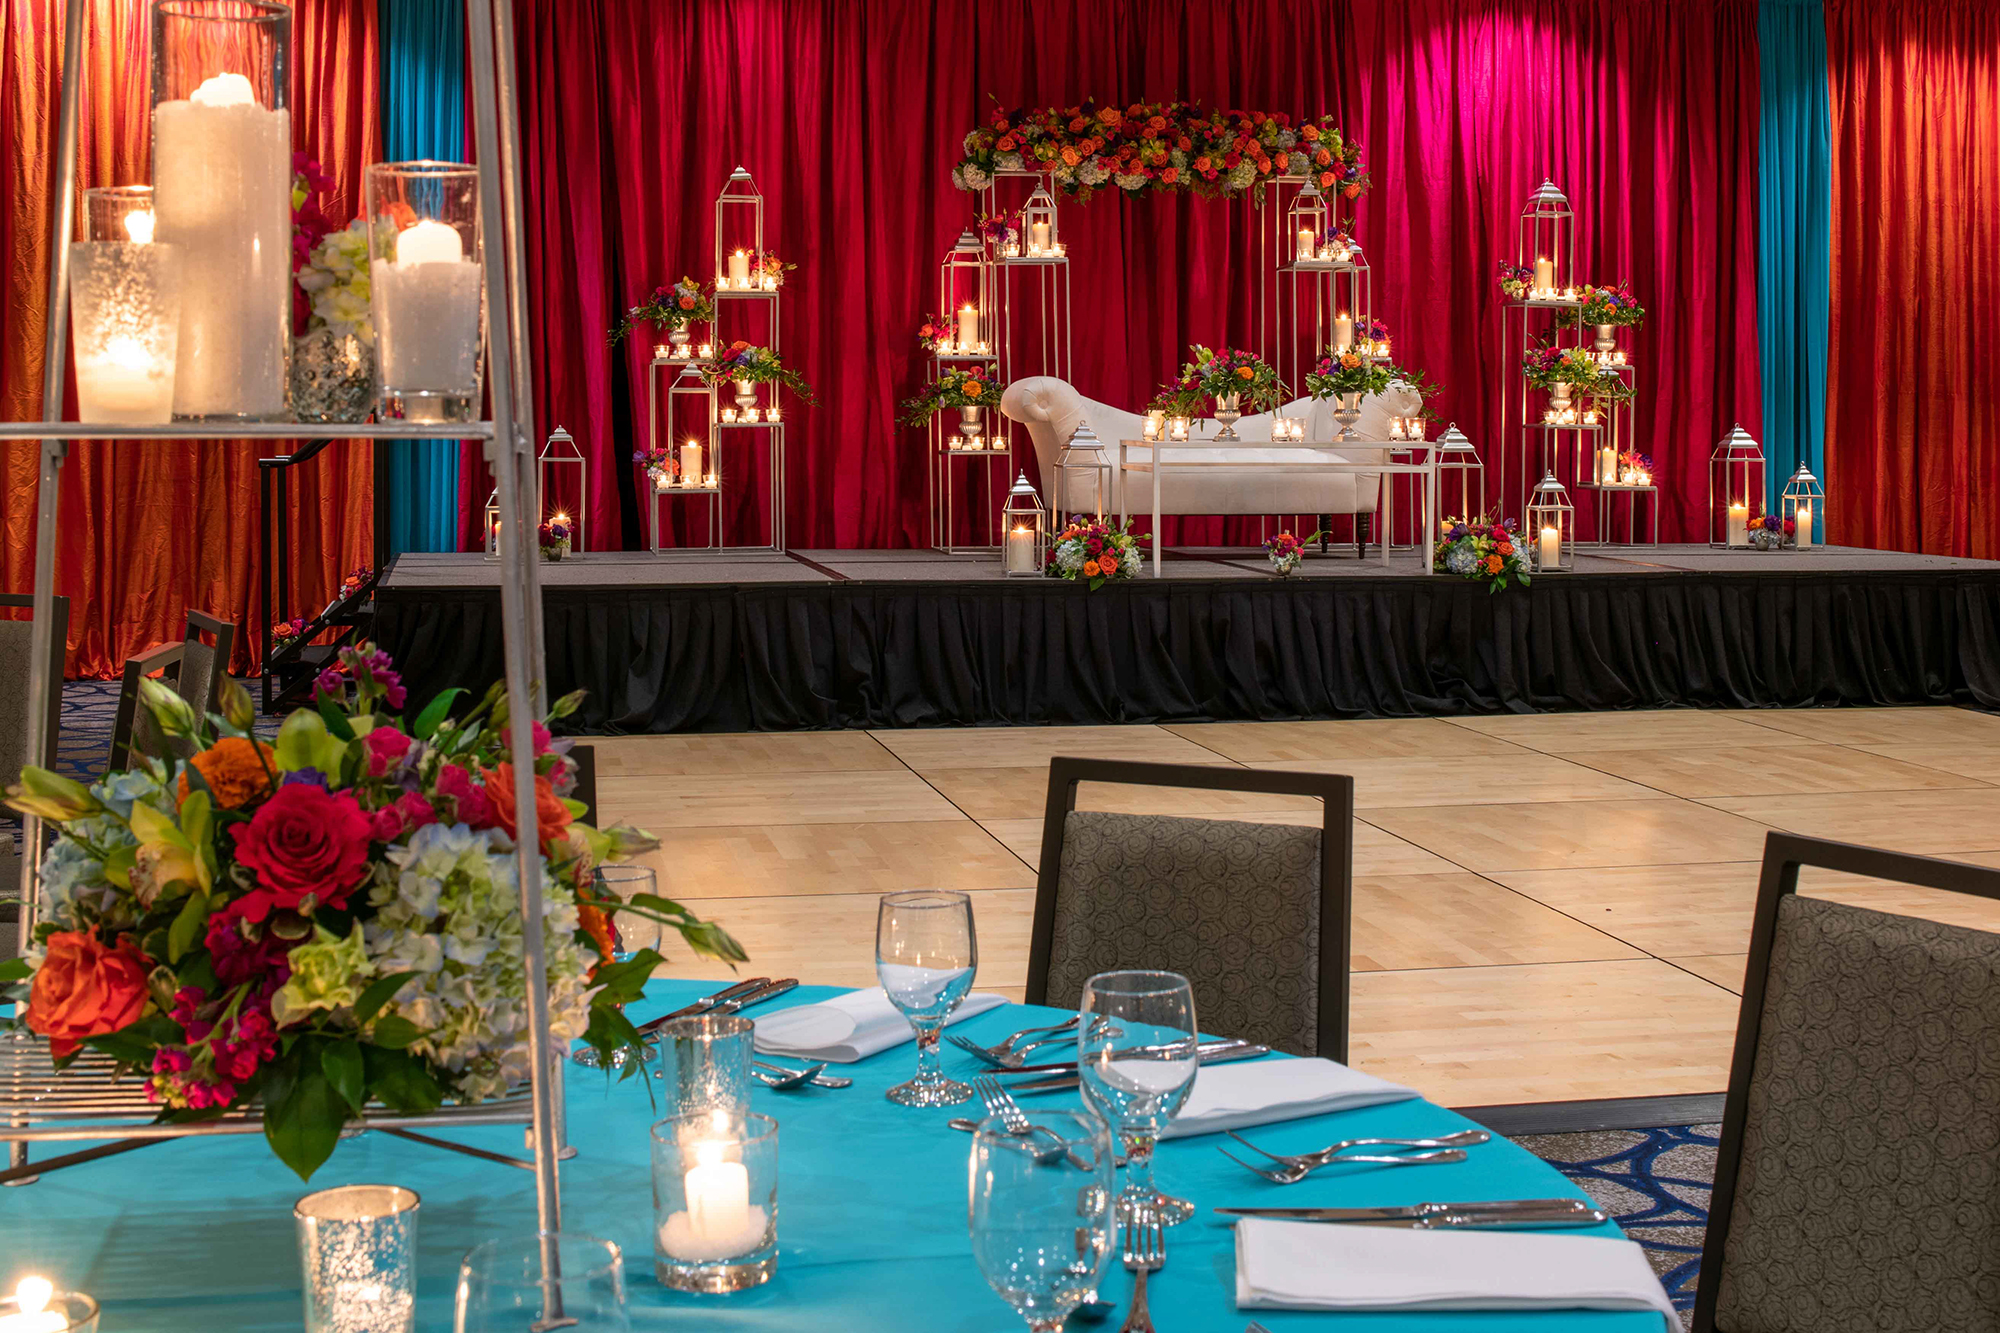 Hilton_Bellevue_Meeting_Grand_Ballroom_Wedding-0012.jpg